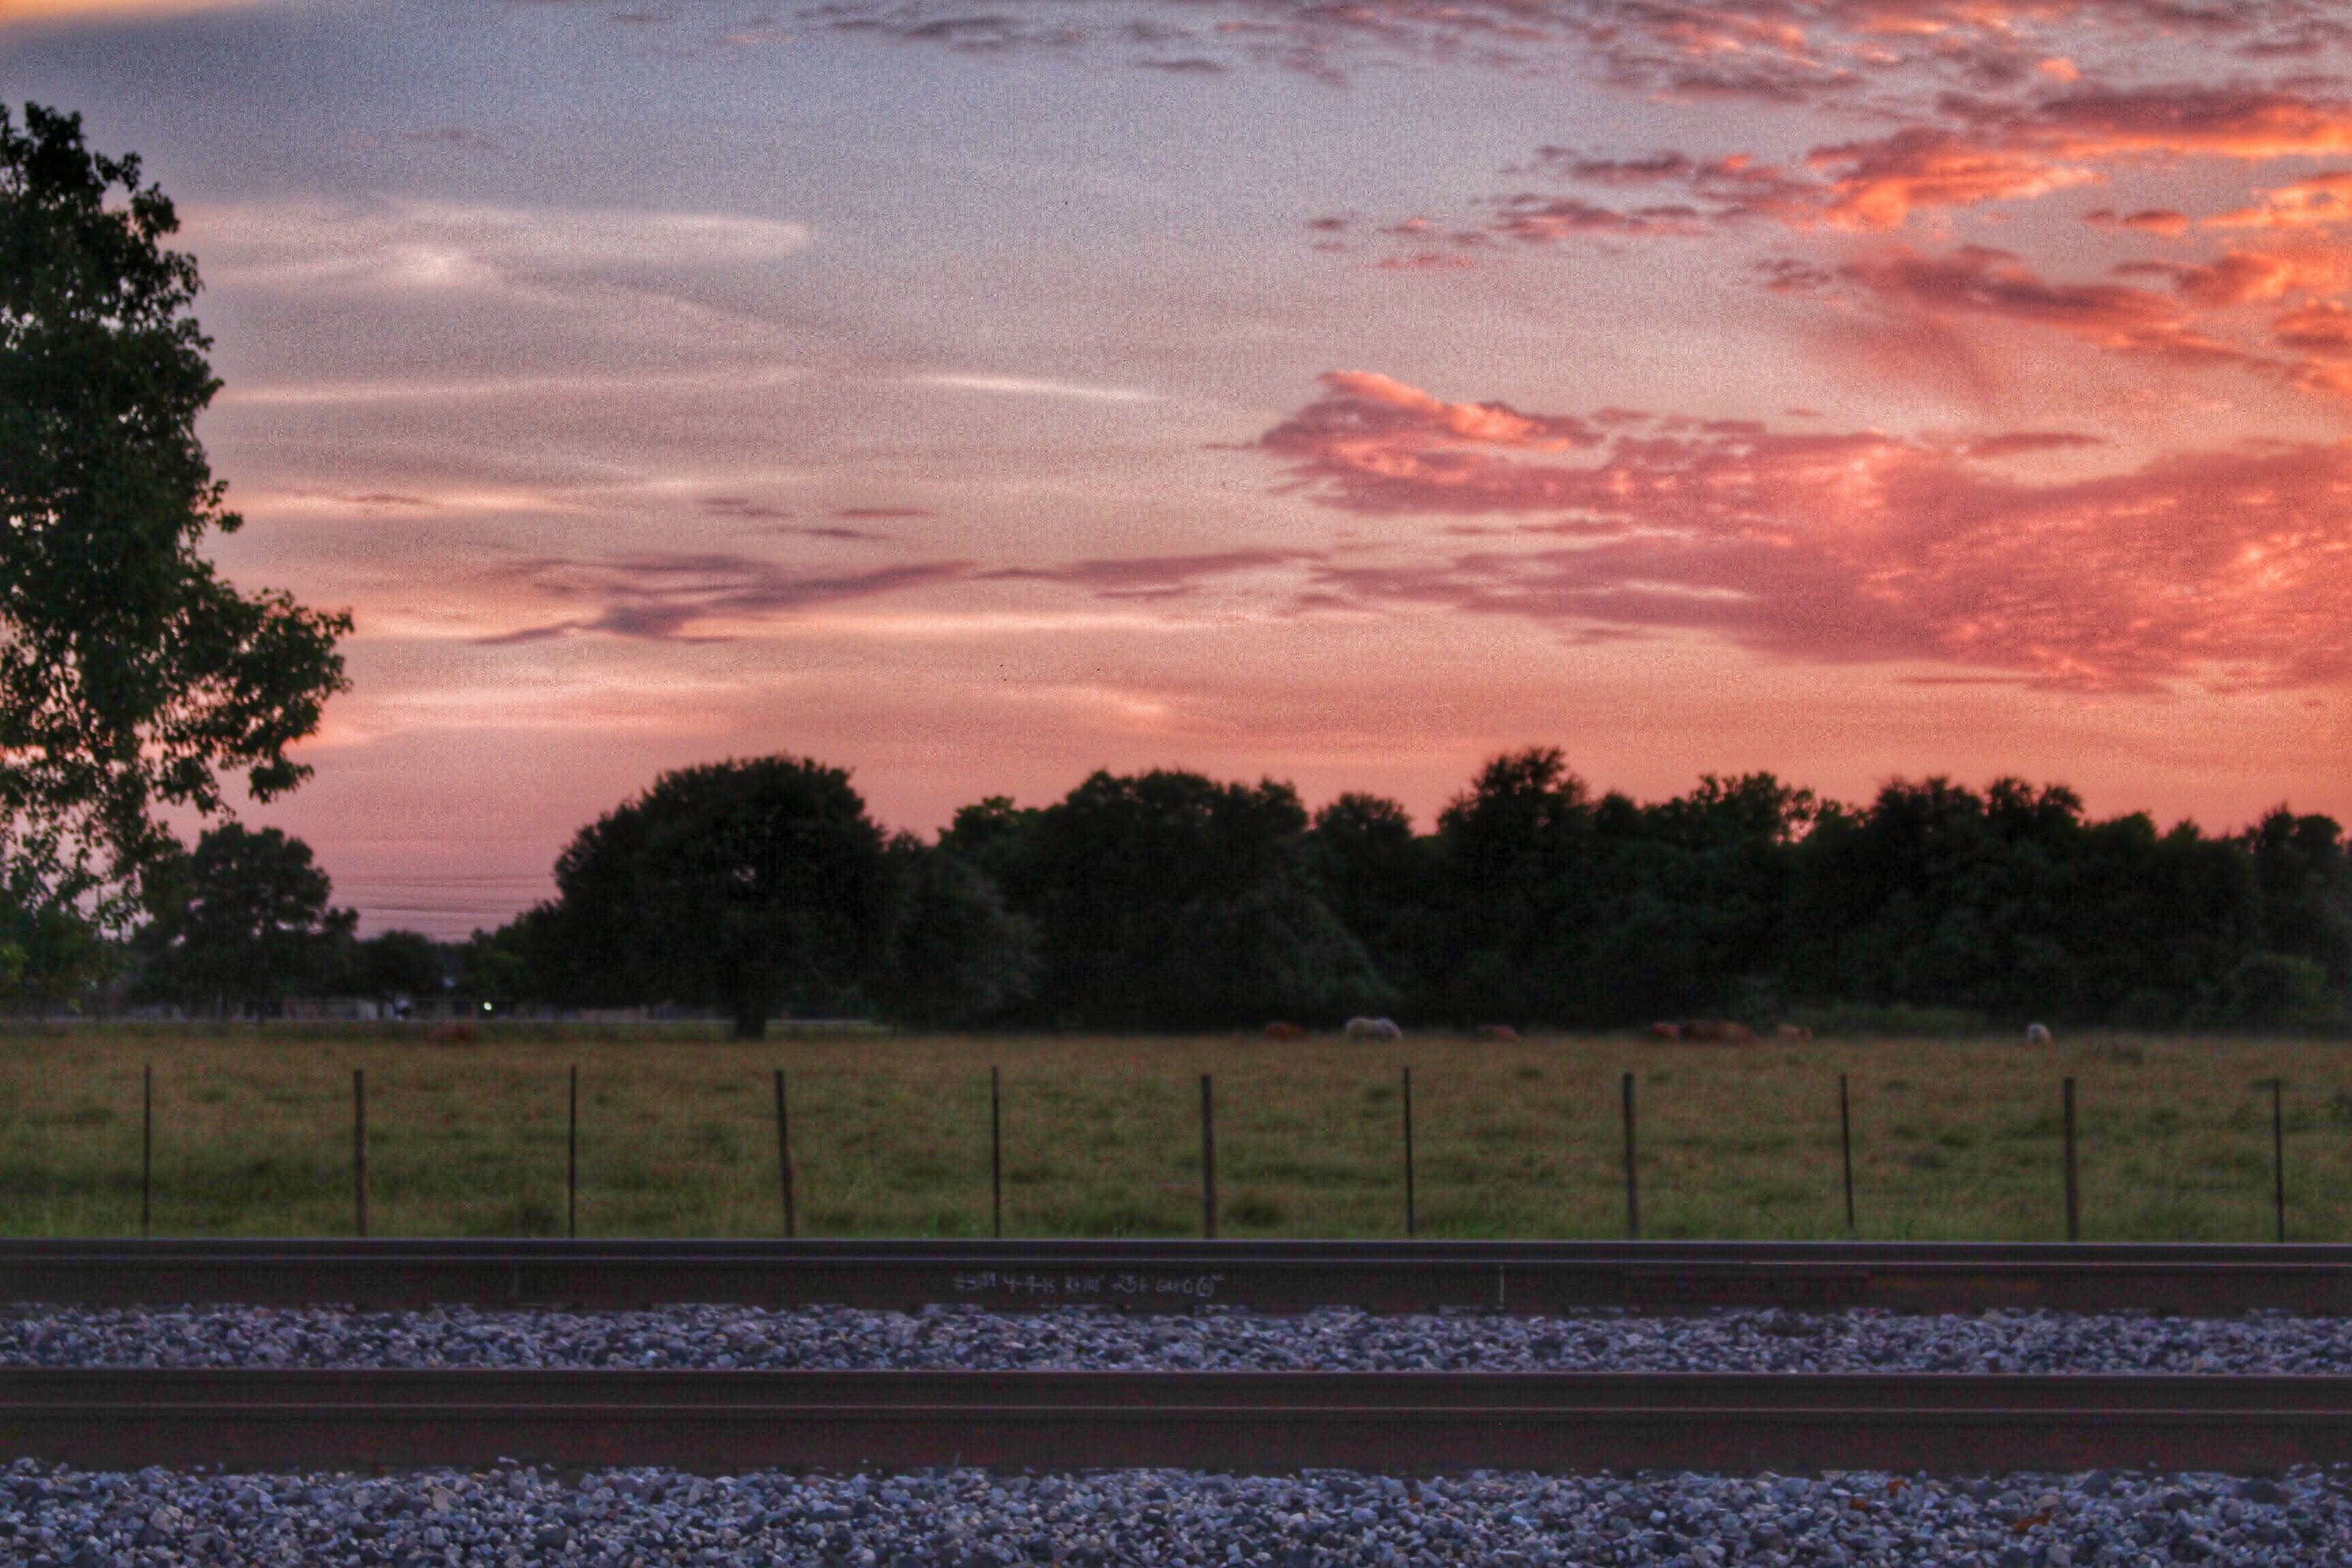 tree, landscape, sky, transportation, field, tranquil scene, tranquility, road, scenics, railroad track, nature, sunset, beauty in nature, cloud - sky, rural scene, growth, rail transportation, no people, outdoors, country road